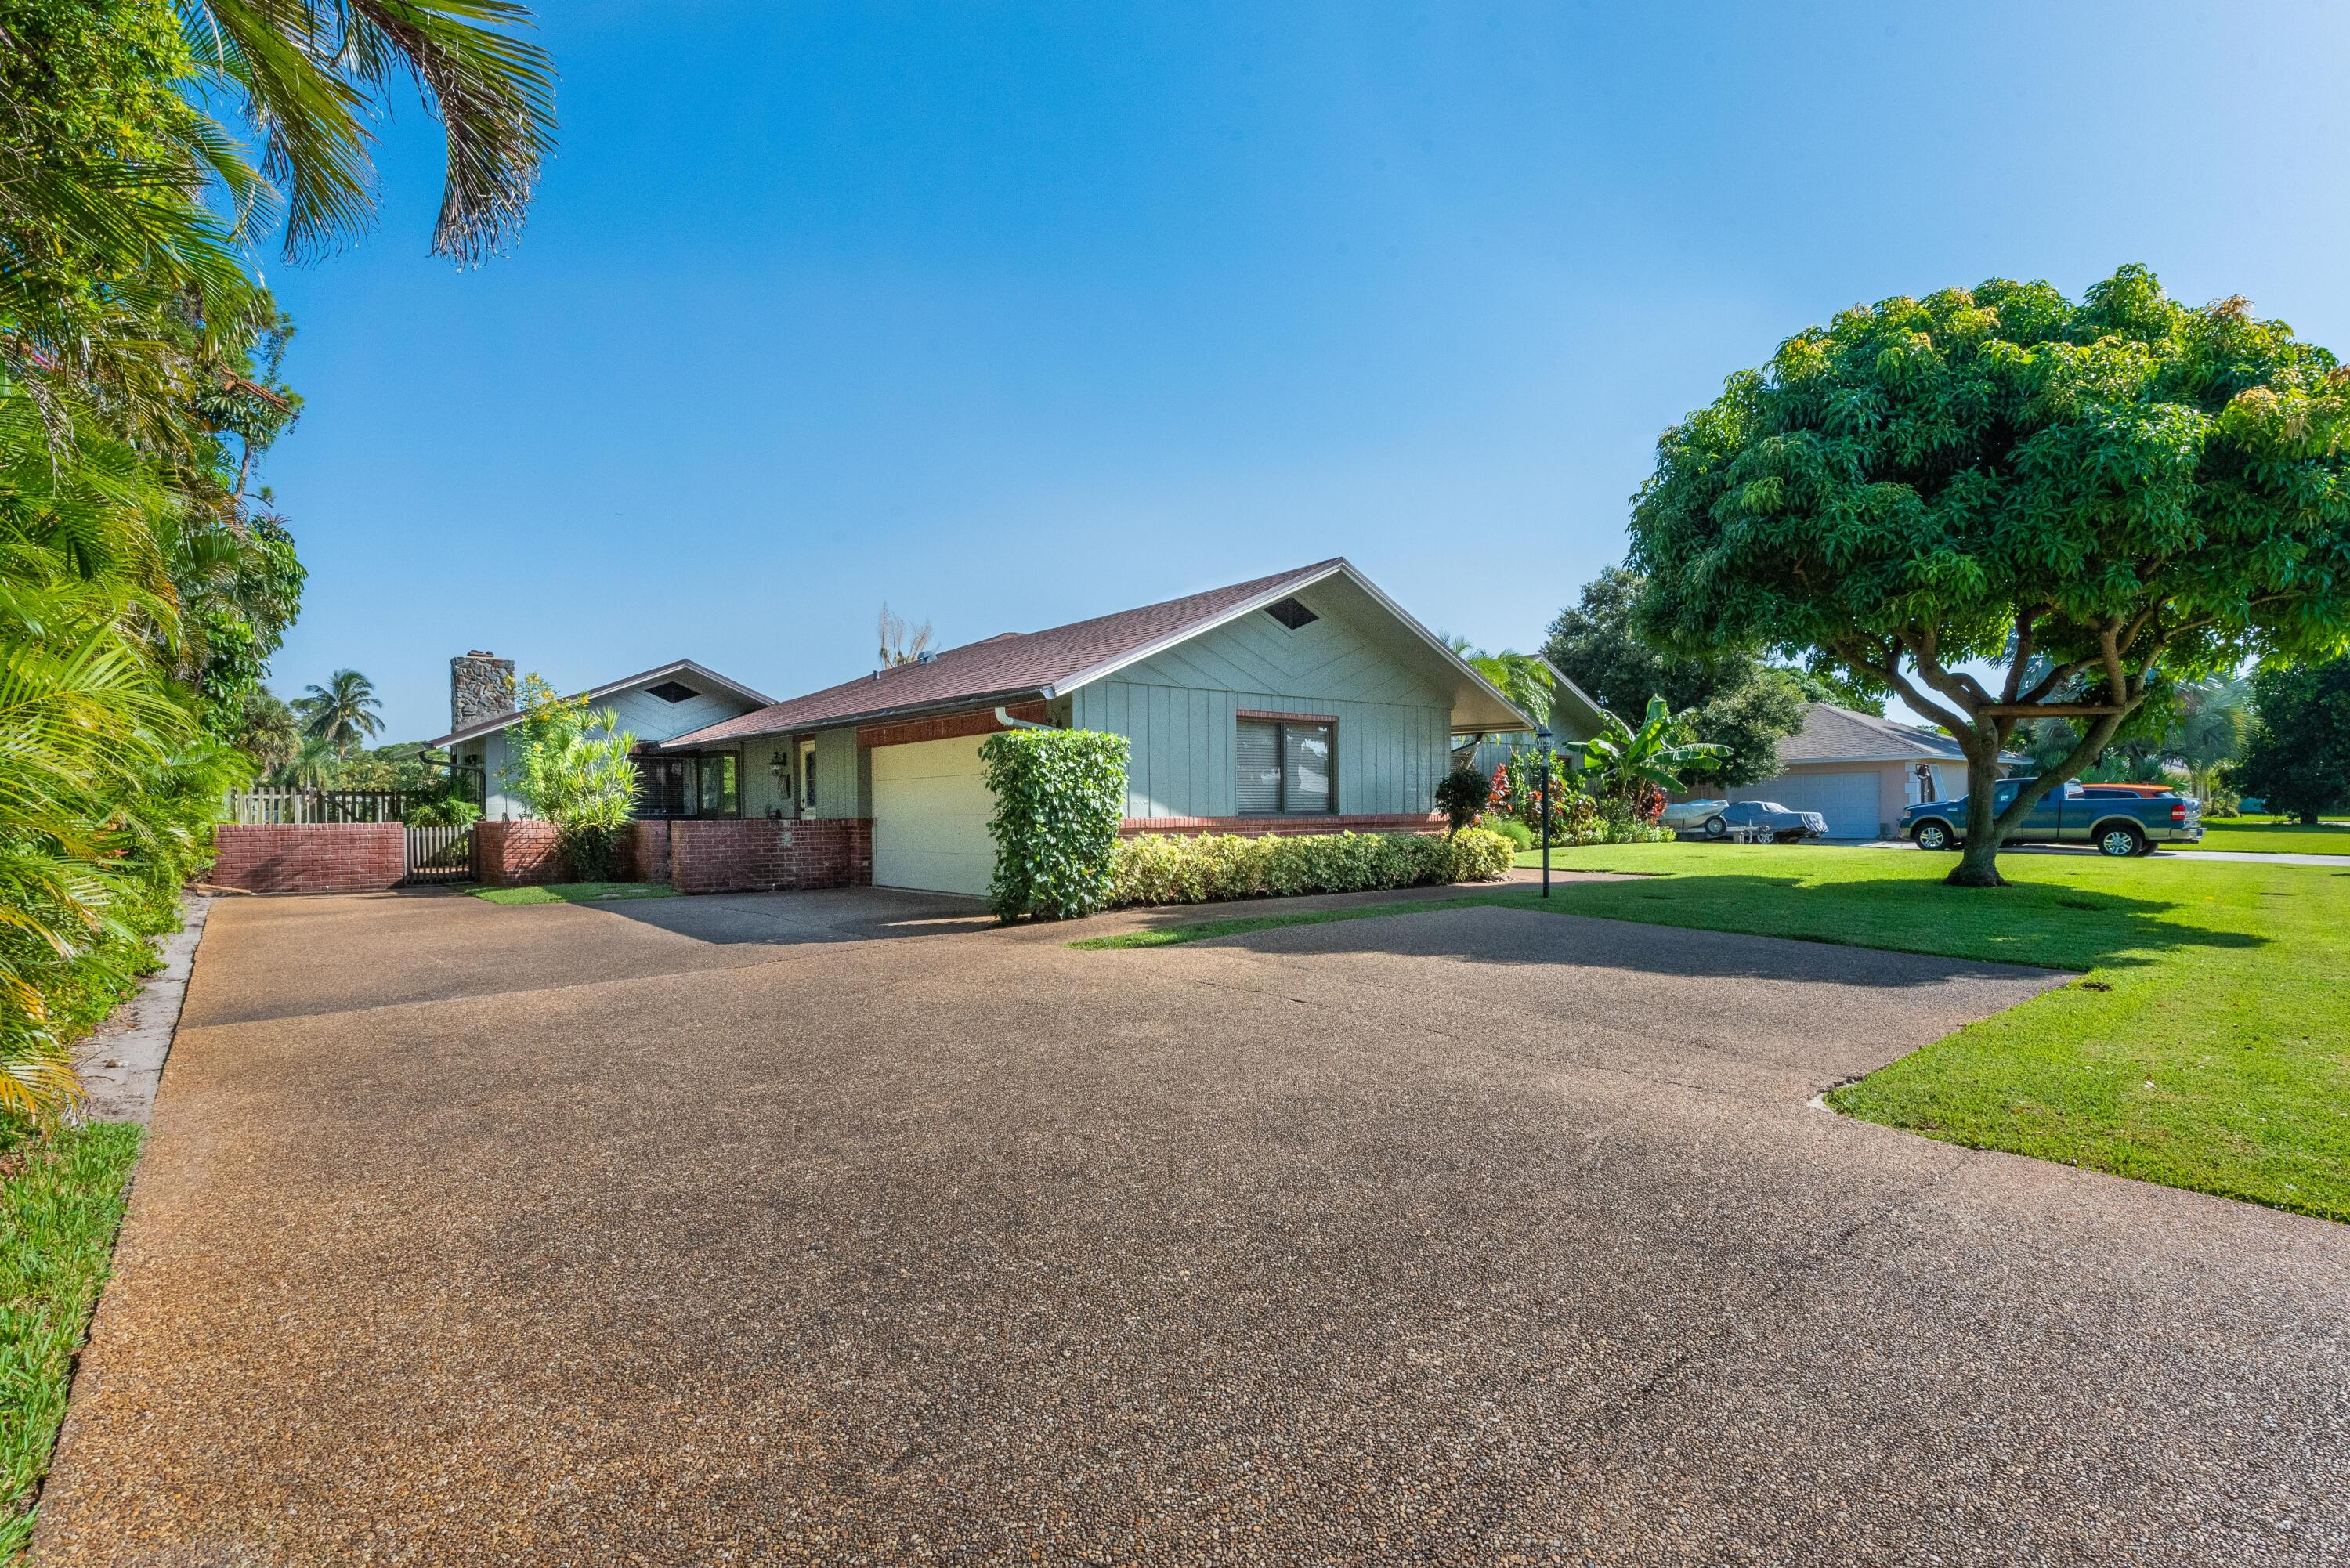 3519 Lakeview Dr (1 of 49)